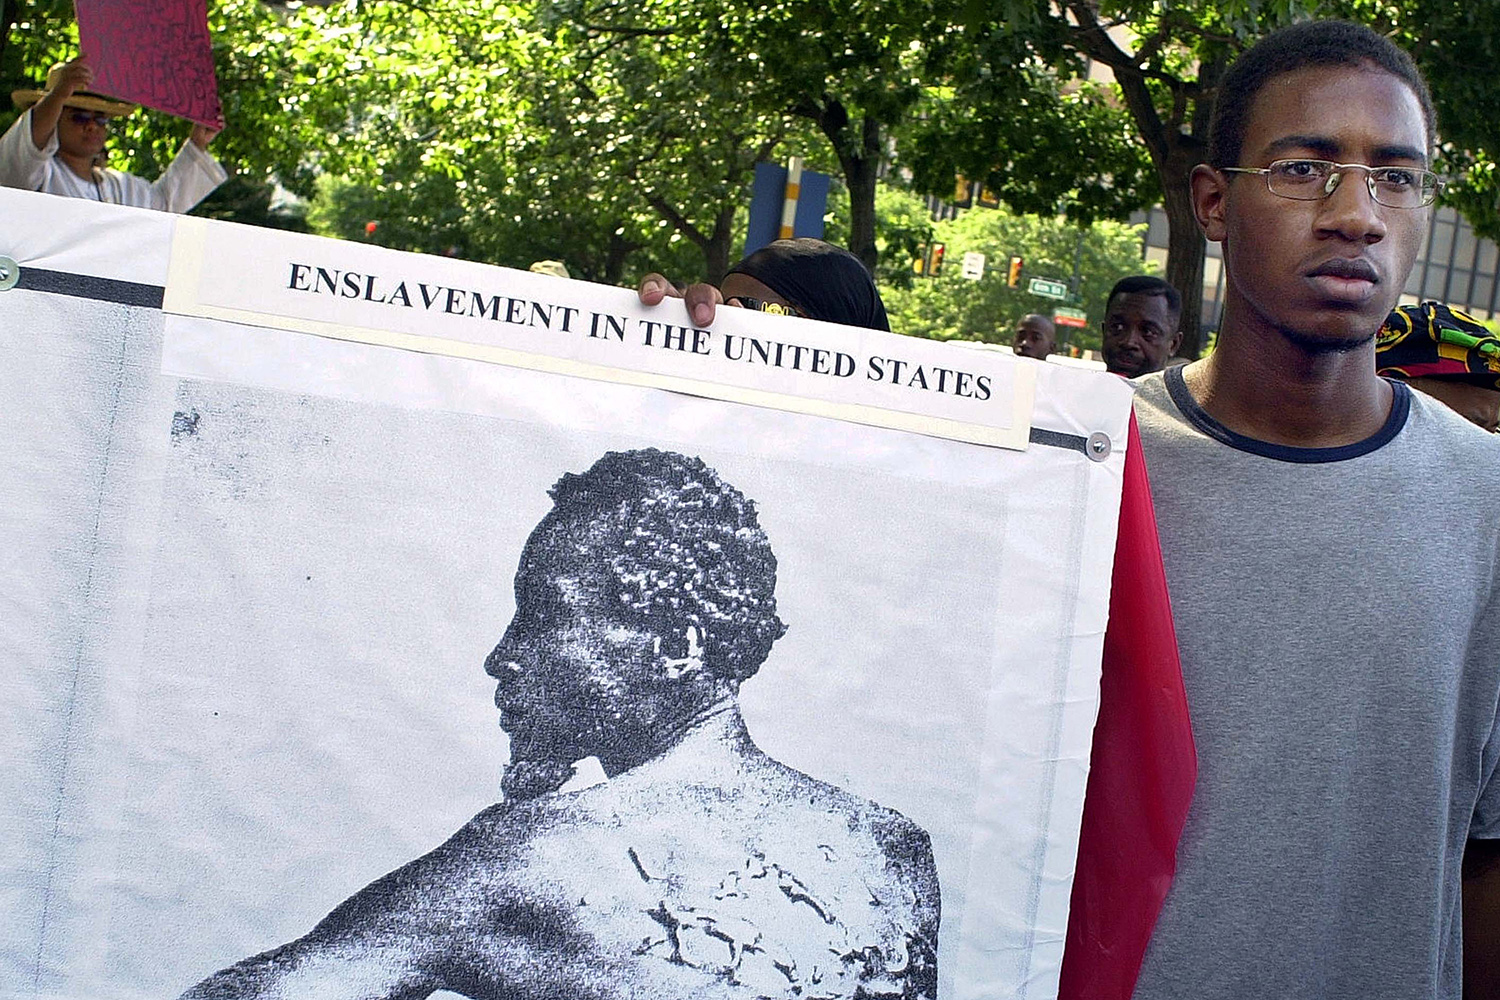 george-washington-slavery-protest-GettyImages-899399.jpg